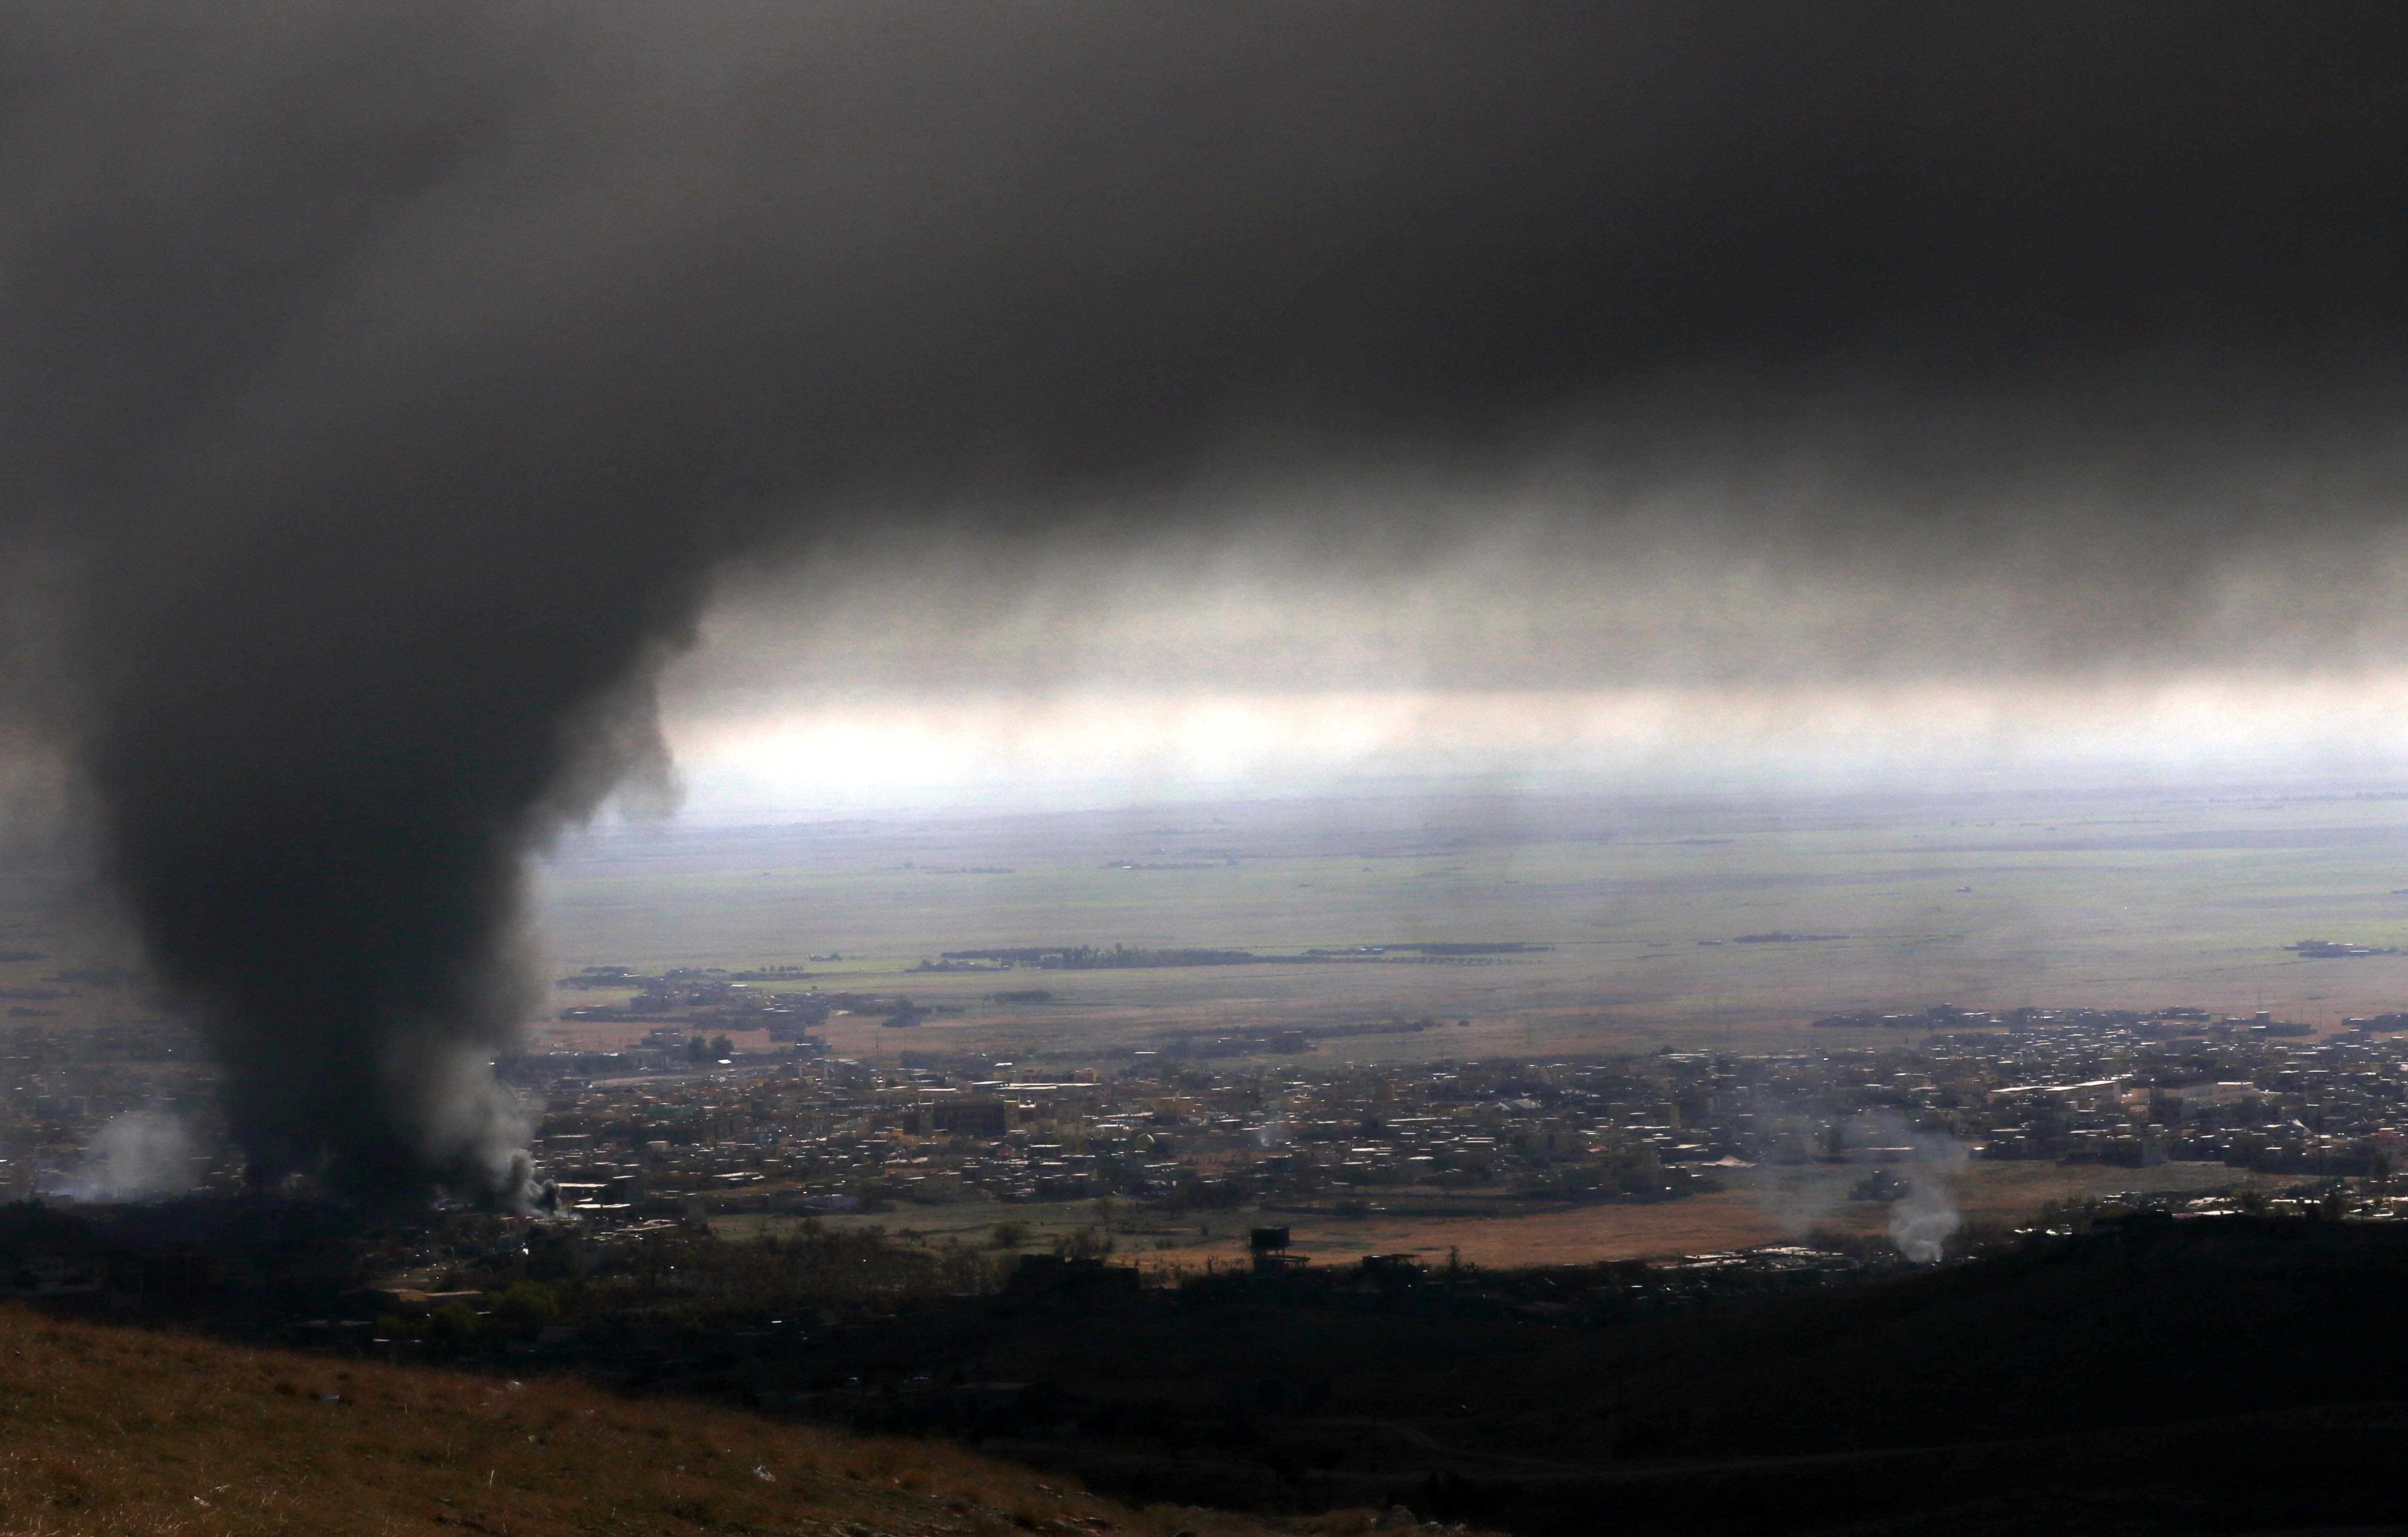 Heavy smoke covers the northern Iraqi town of Sinjar during an operation by Iraqi Kurdish forces backed by US-led strikes, on Nov. 12, 2015.